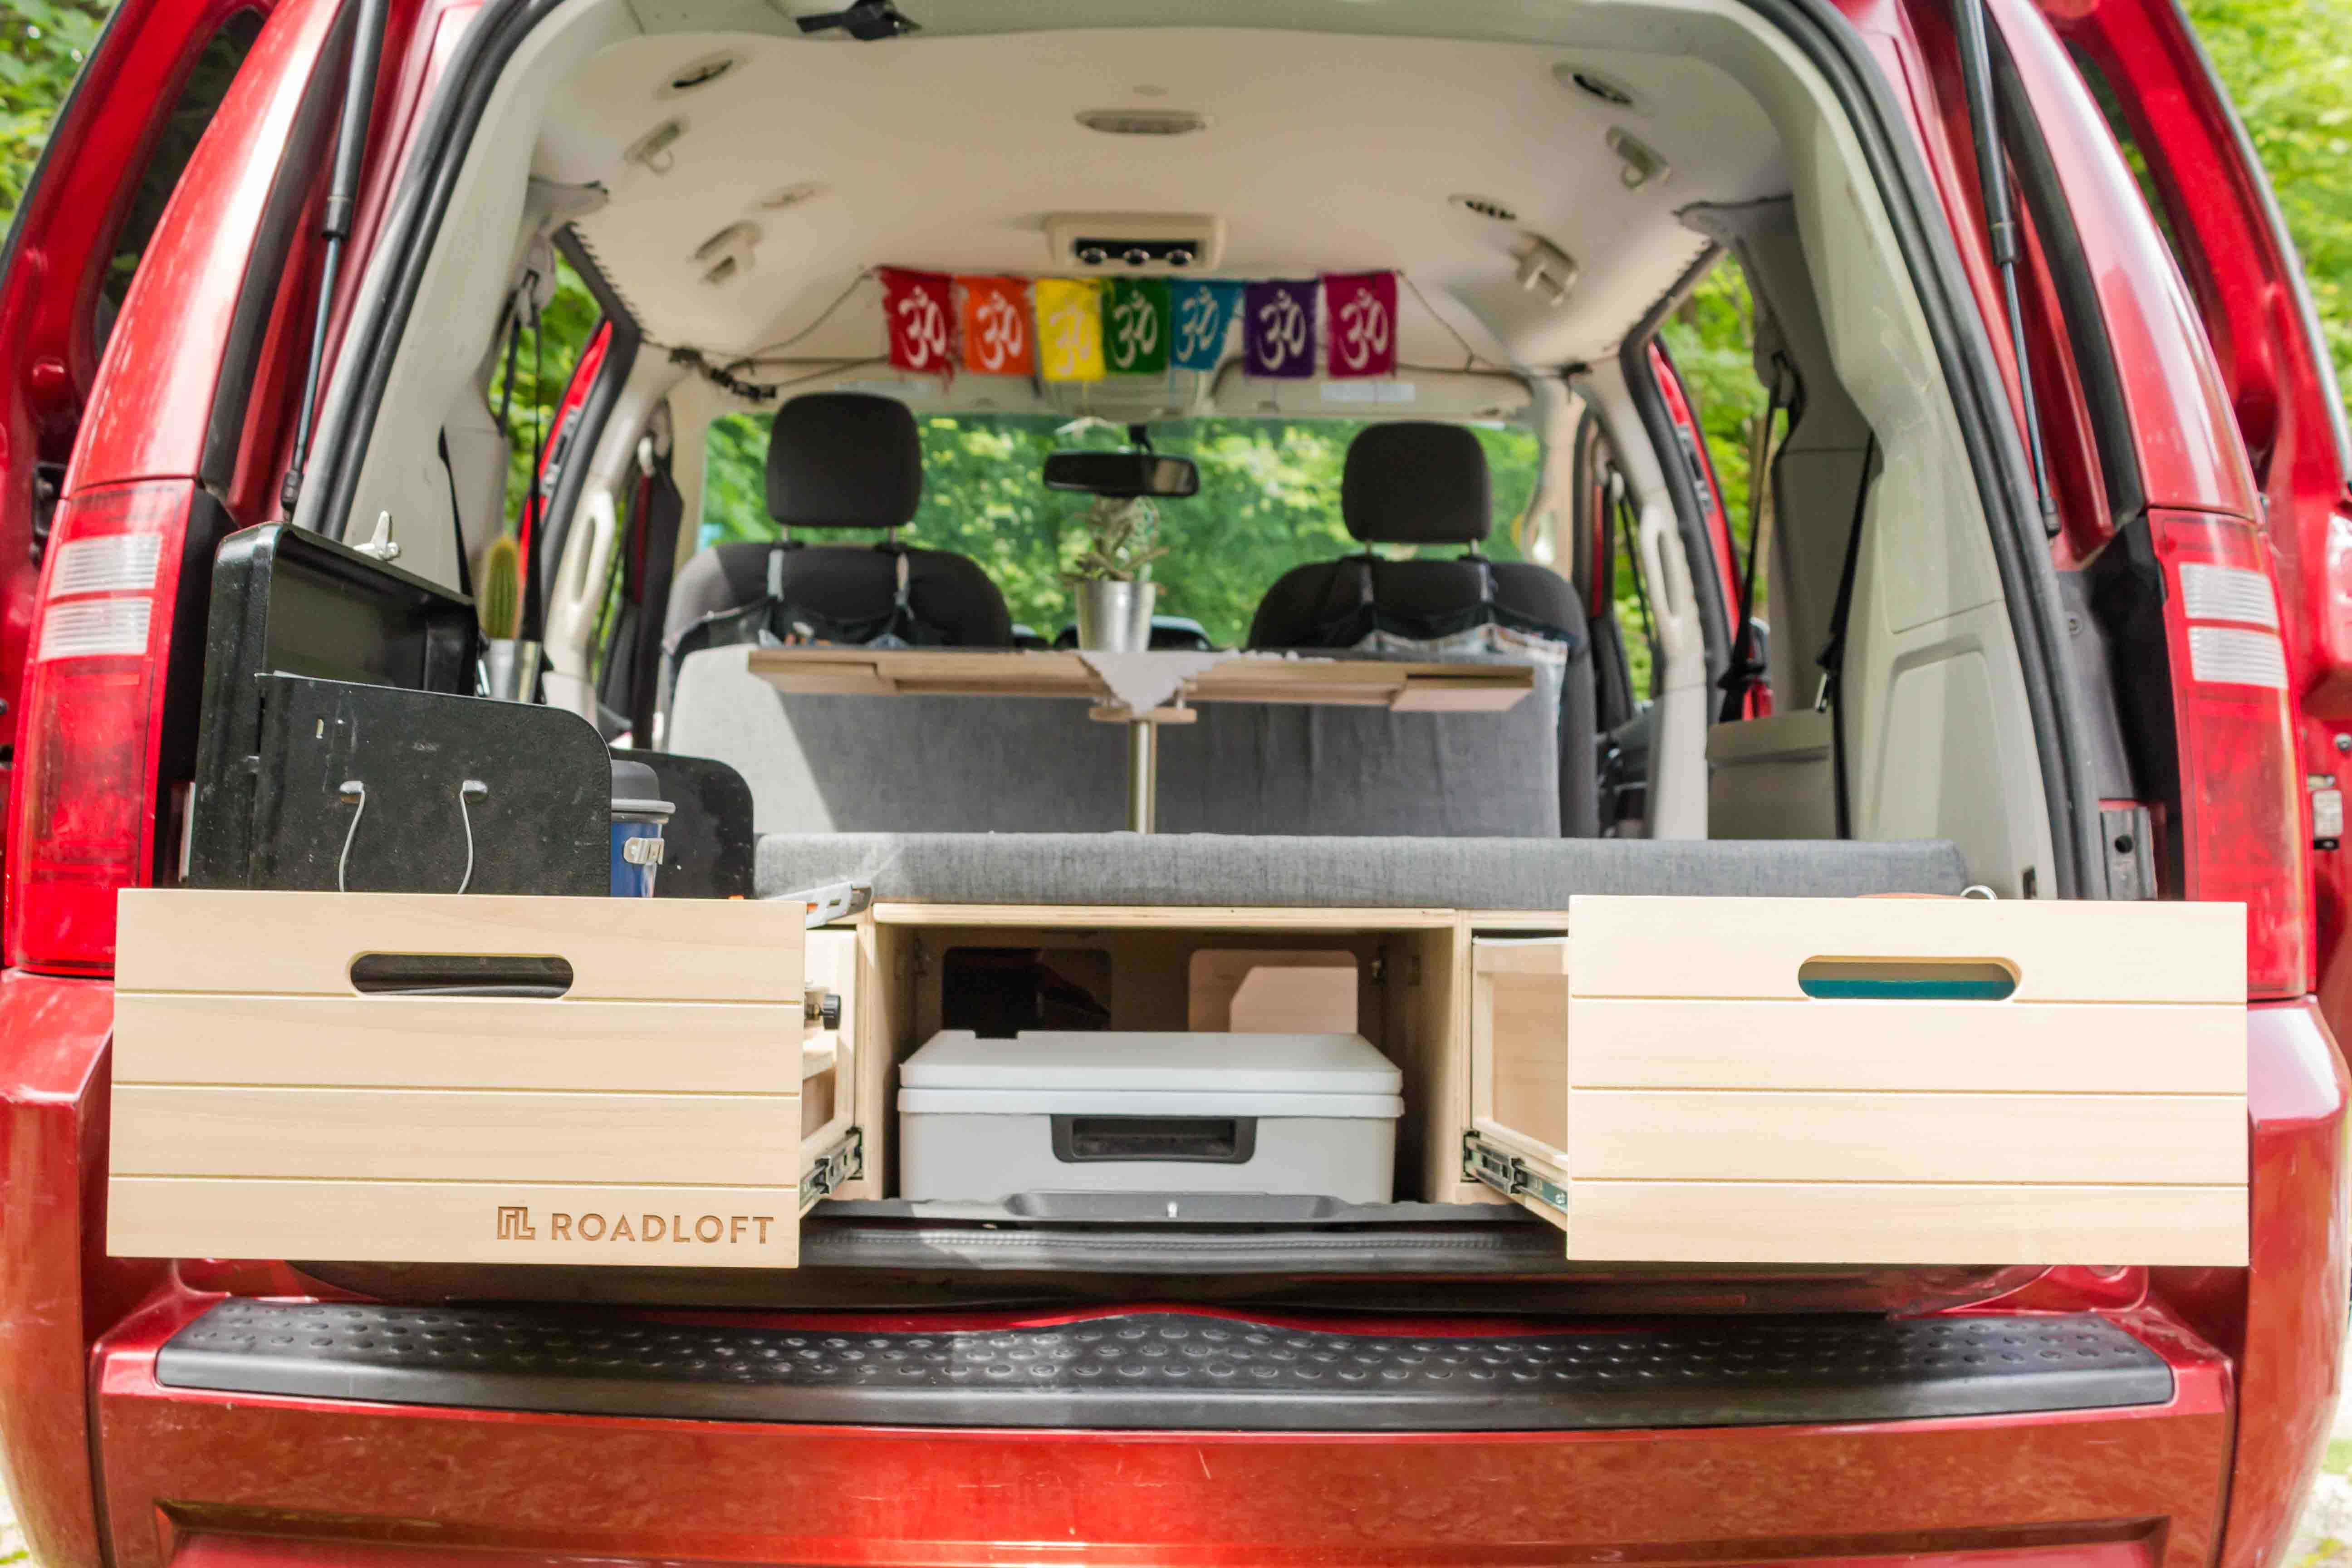 Turn your Minivan Into a Camper With the Conversion kit